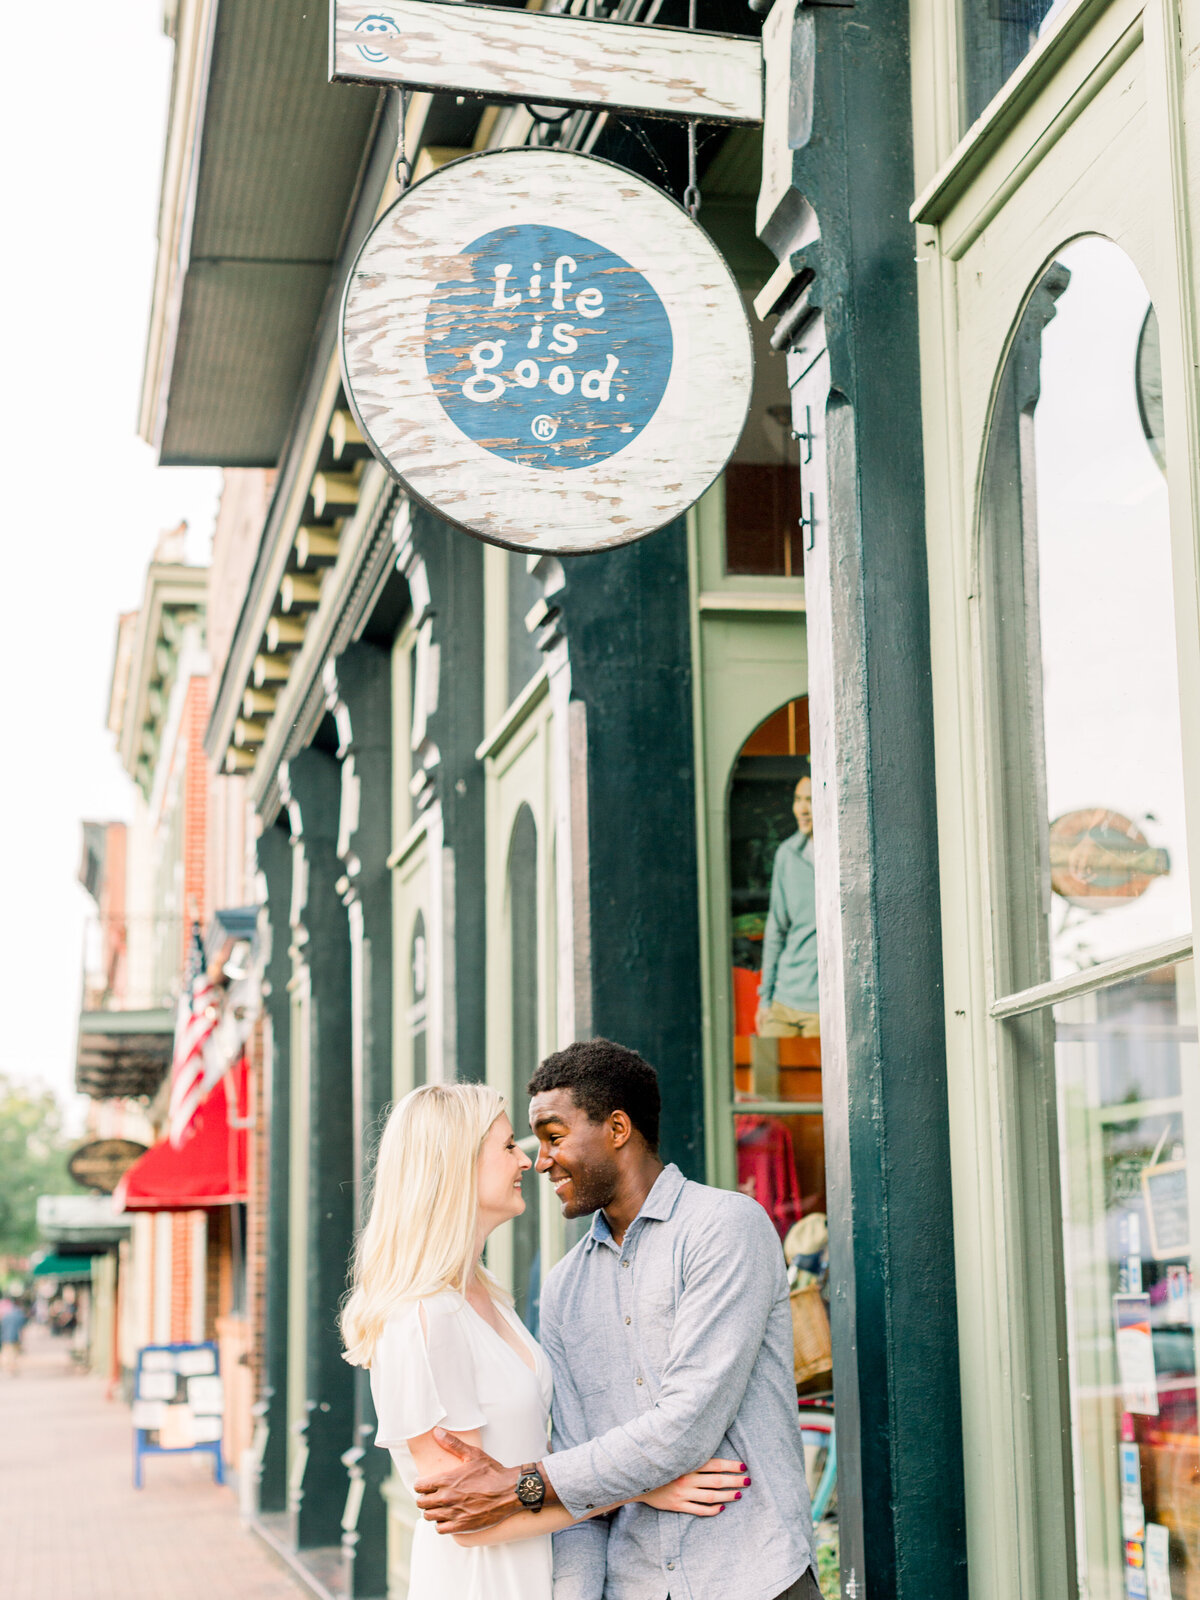 Dorothy_Louise_Photography_Sarah_Jared_Main_Street_Saint_Charles_Engagement_Session-5738